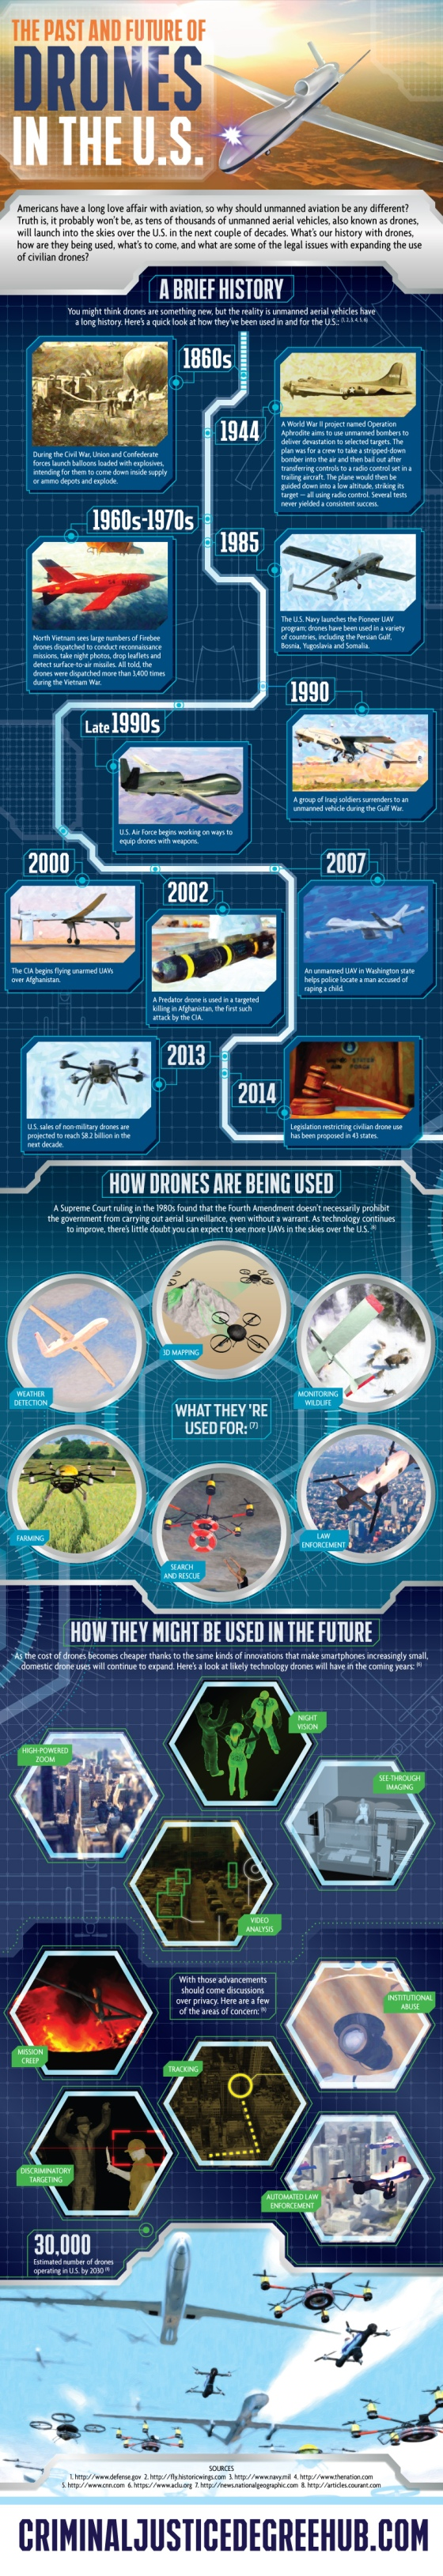 The Past and Future of Drones in the U.S